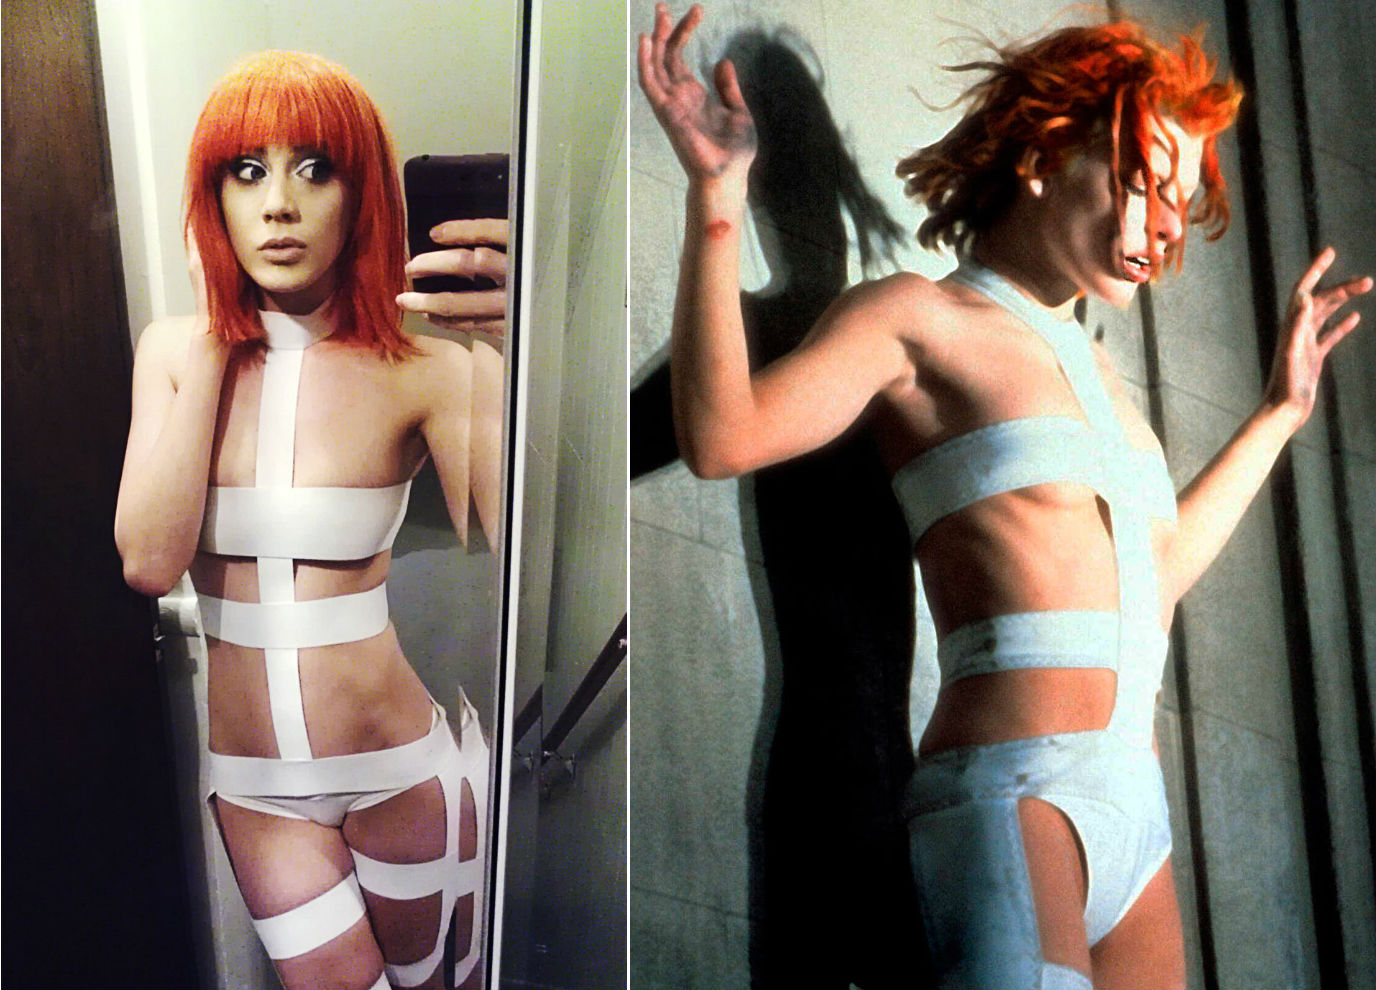 4.LeeloofromThe Fifth Element